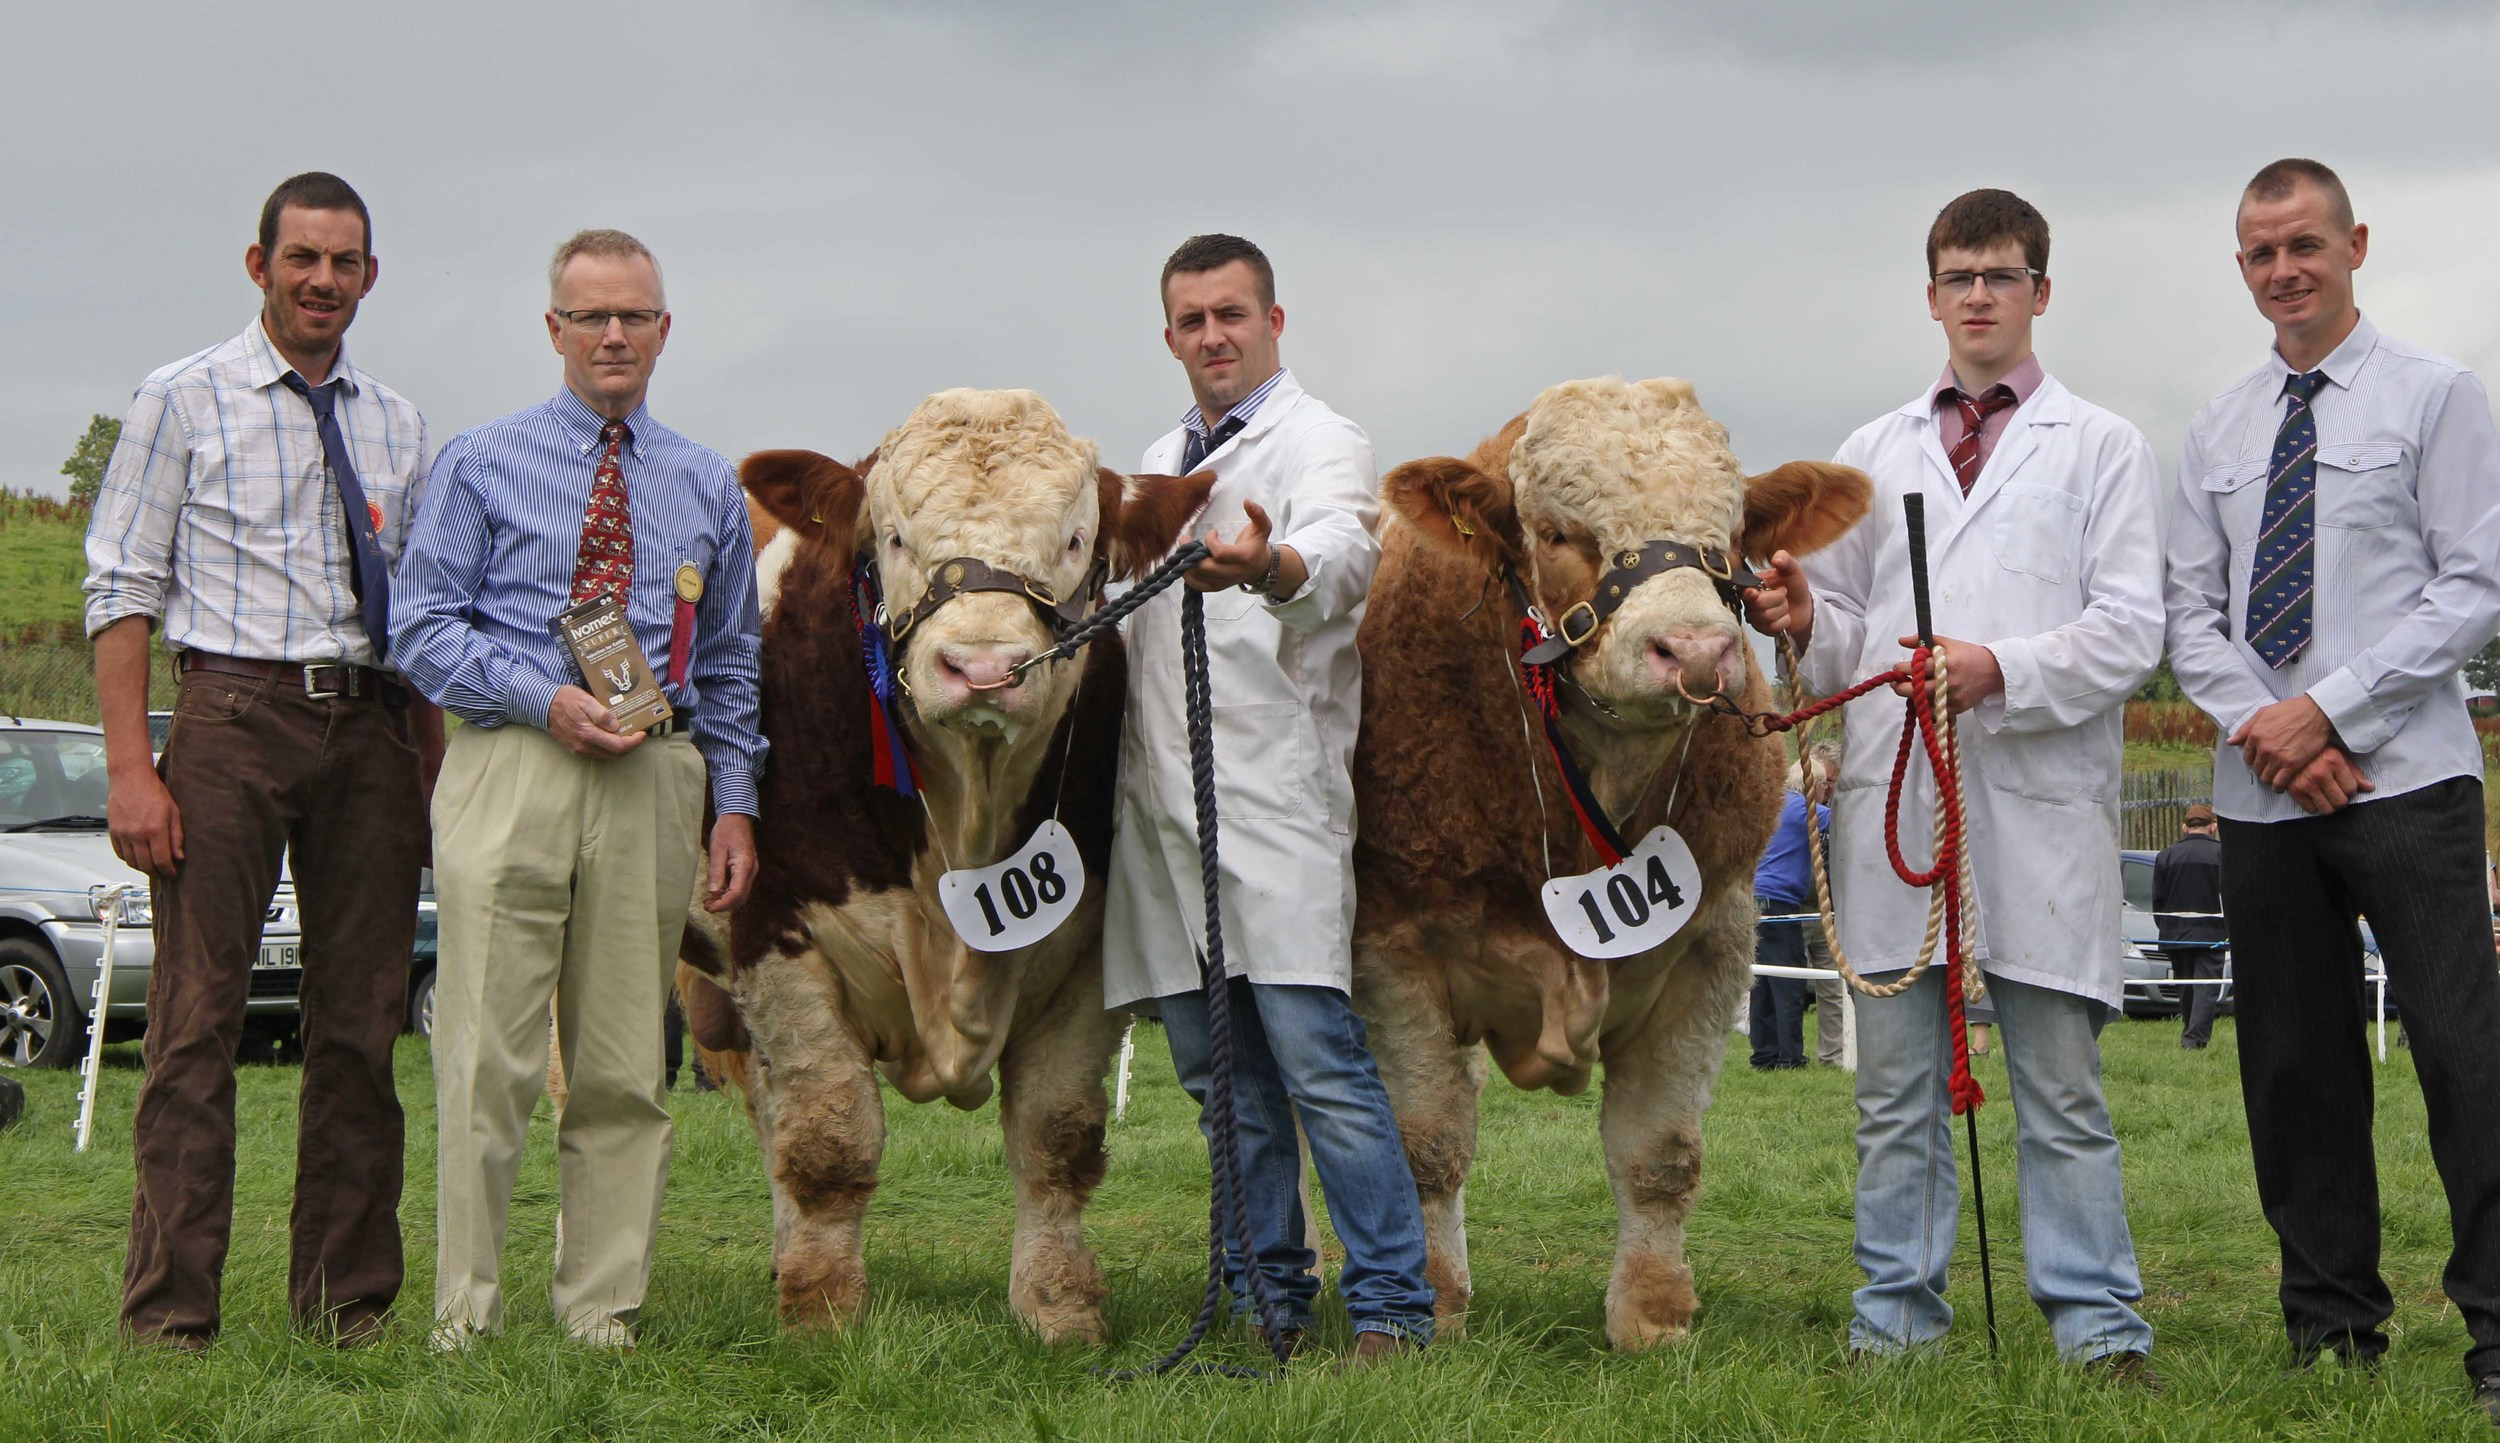 Ivomec Super Simmental Pair of the Year winners were Slievenagh Emperor and Slievenagh Extra Special shown by Christopher and Jamie Boyd, Portglenone. Included are judge Garrett Behan, Portlaoise; Philip Clarke, Merial Animal Health, sponsor; and Richard Rodgers, chairman, NI Simmental Club.